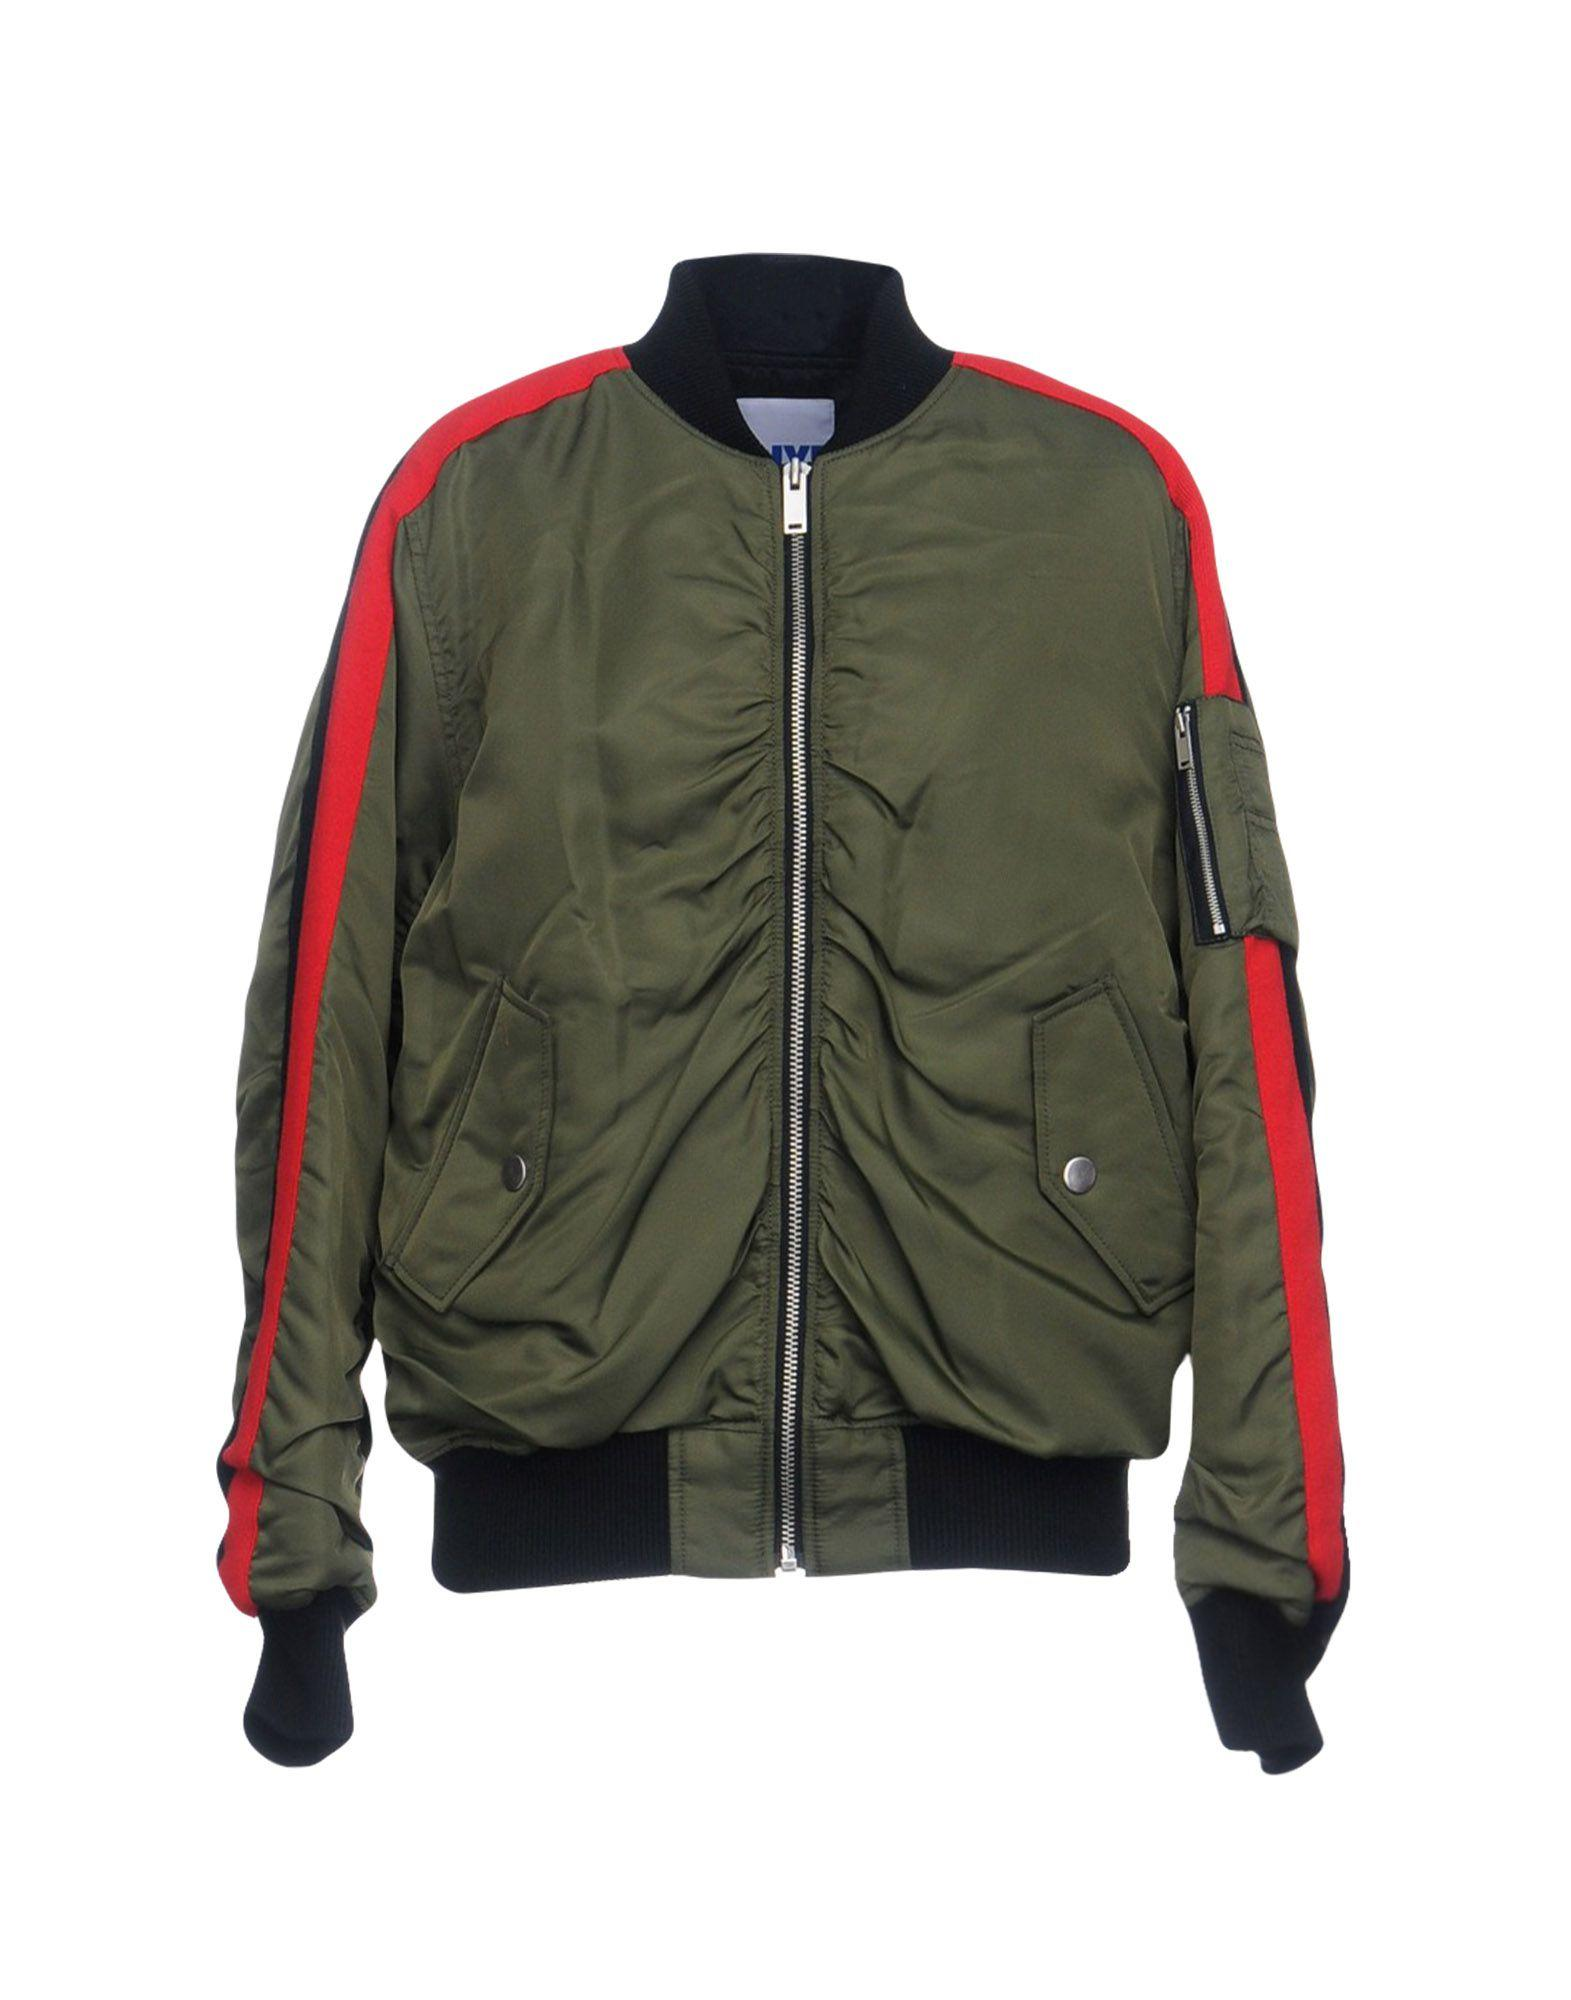 Sjyp Jackets In Military Green